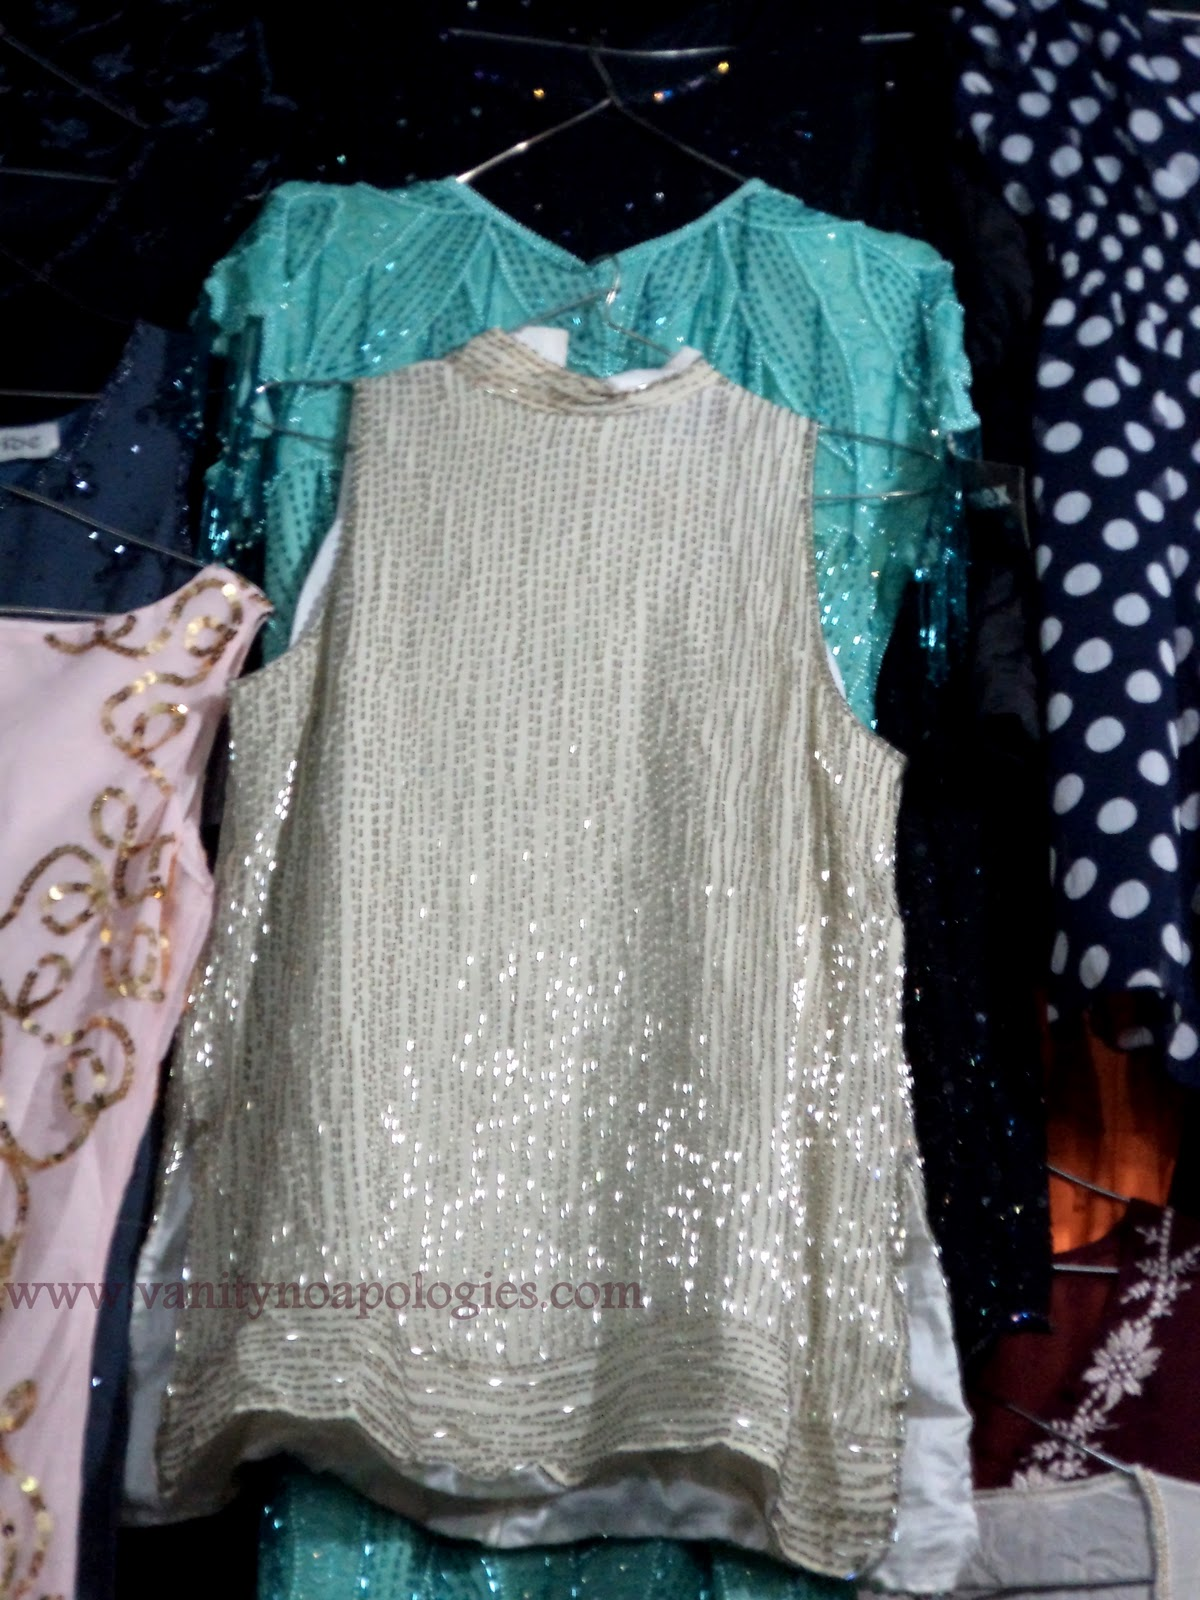 fe57c917562 A Complete Low Down On Thrift Shopping - Sarojini Nagar Market and ...